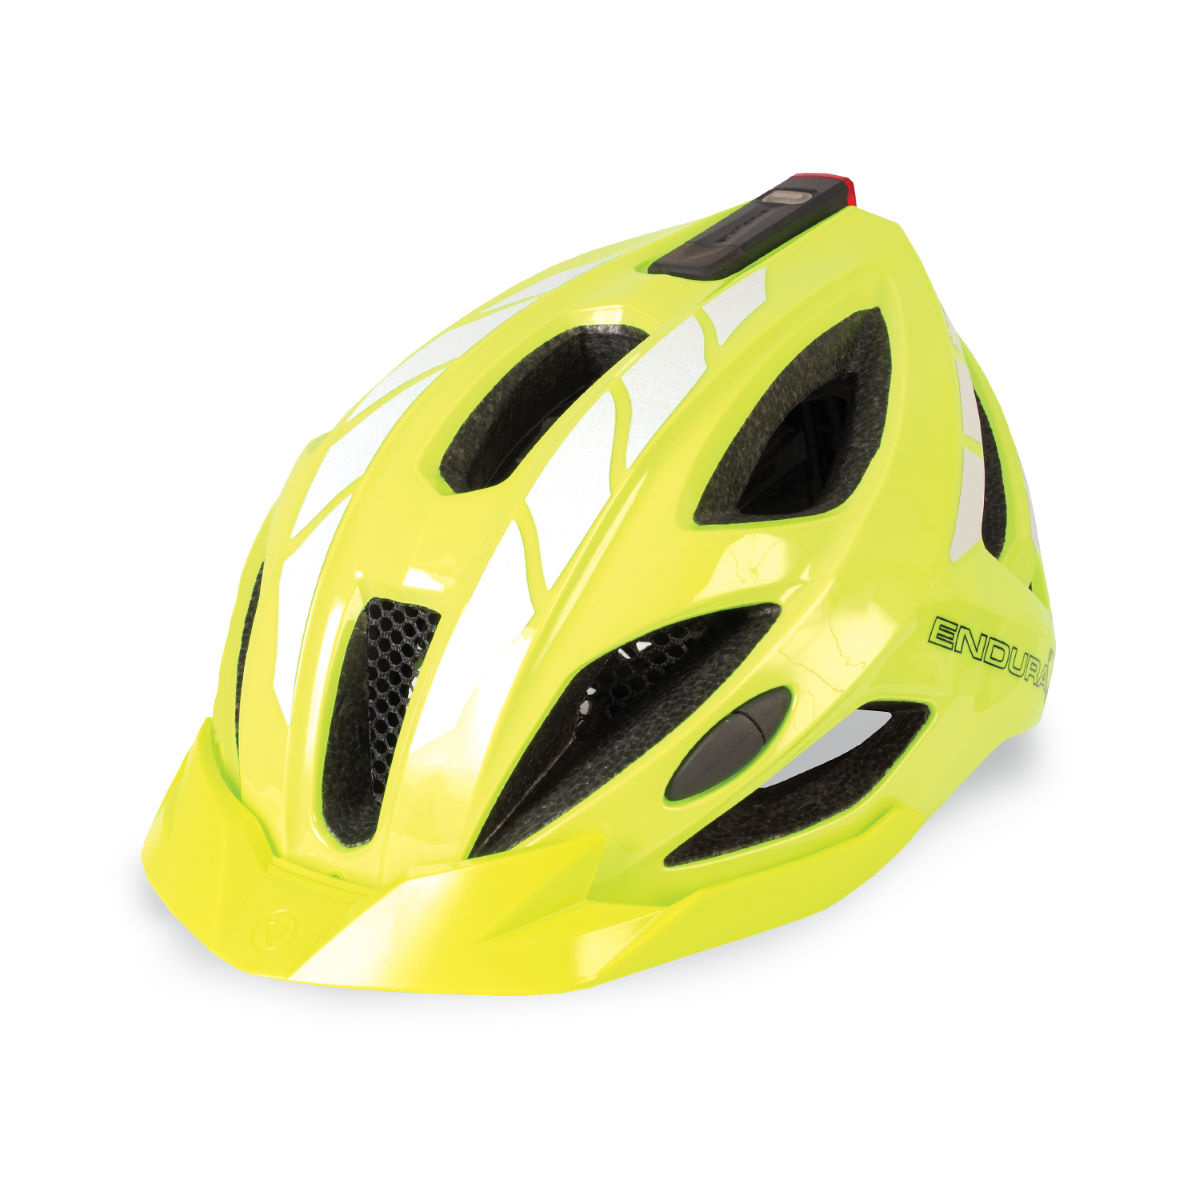 Casque Endura Luminite - S/M Jaune Casques